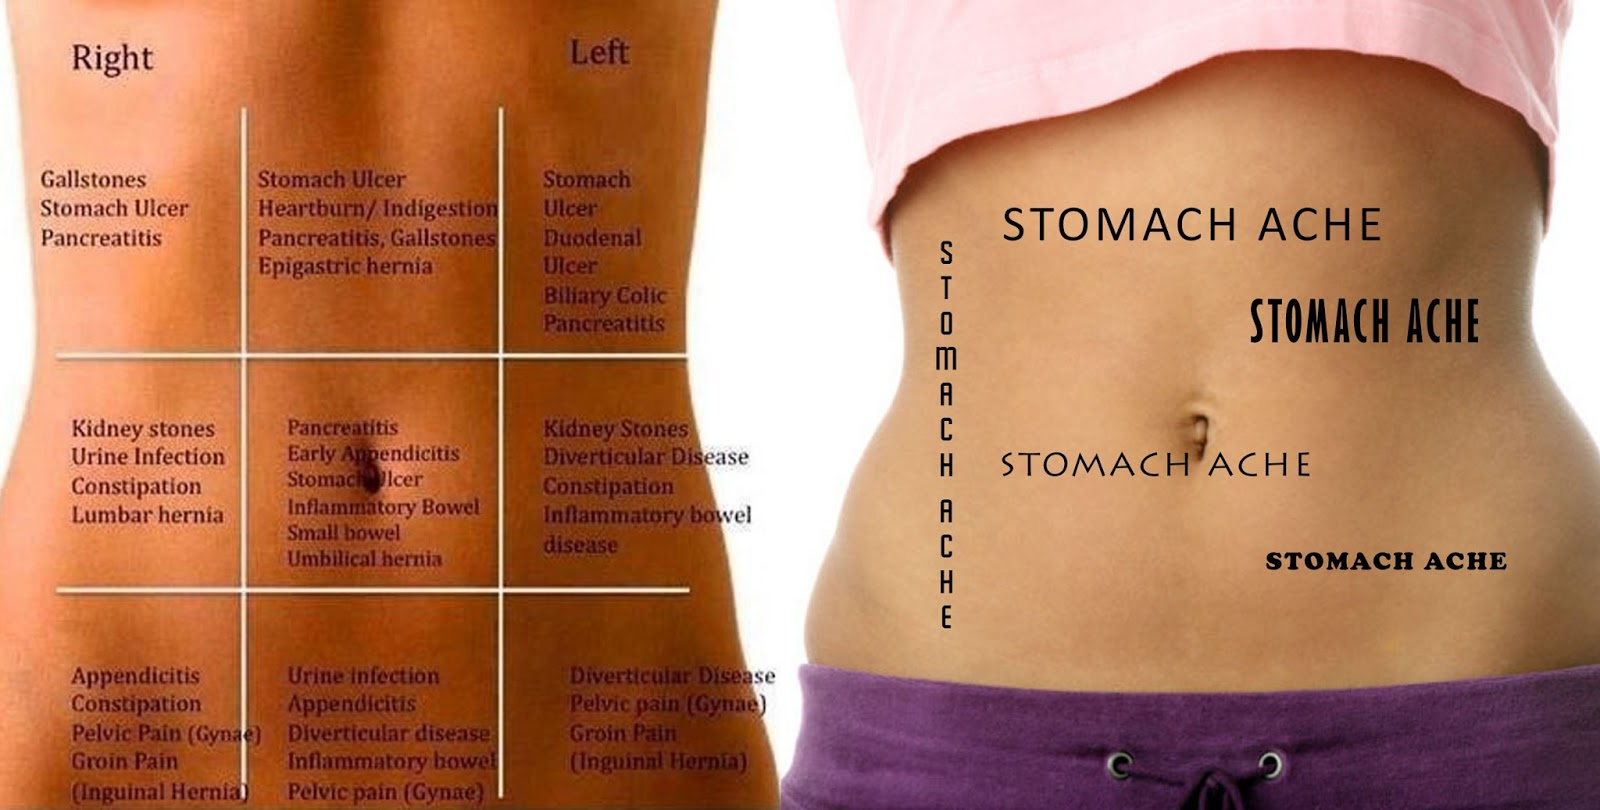 Stomach picture anatomy